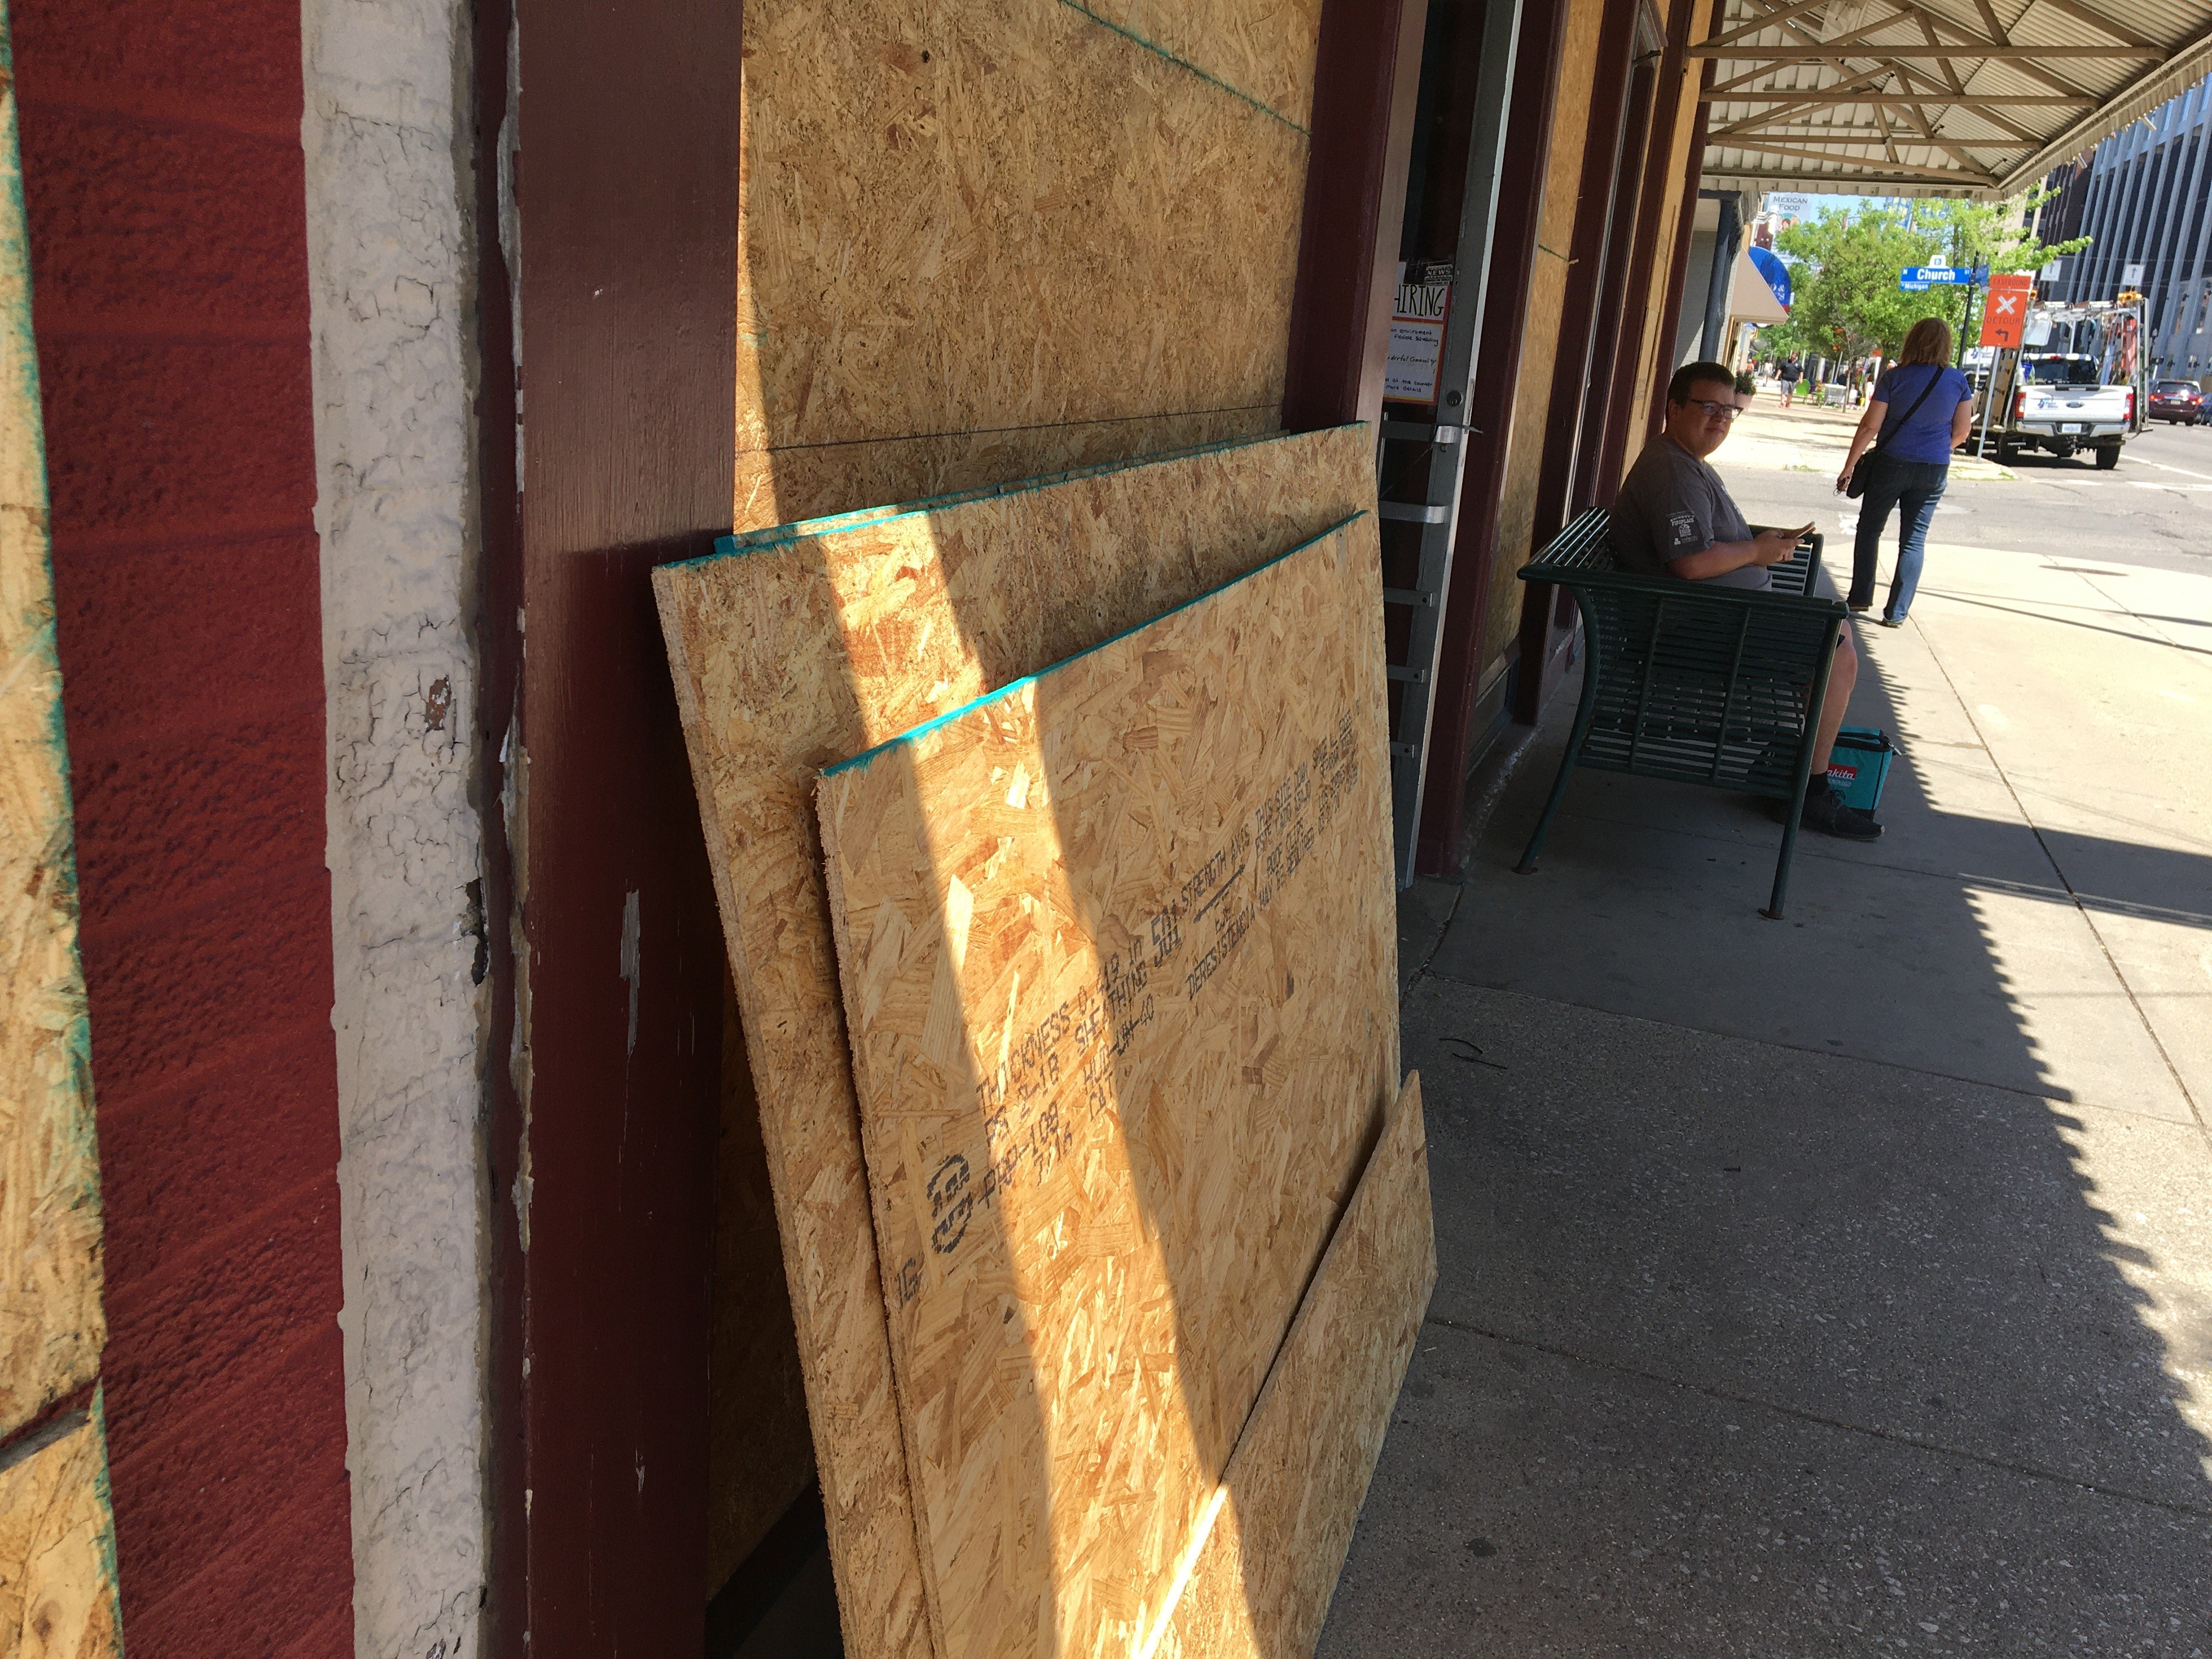 Press board rests against a downtown Kalamazoo building as work crews begin covering windows and doors of shops and businesses along the main streets and in the Kalamazoo Mall on Tuesday, June 2, 2020. (WWMT/Manny Revilla)